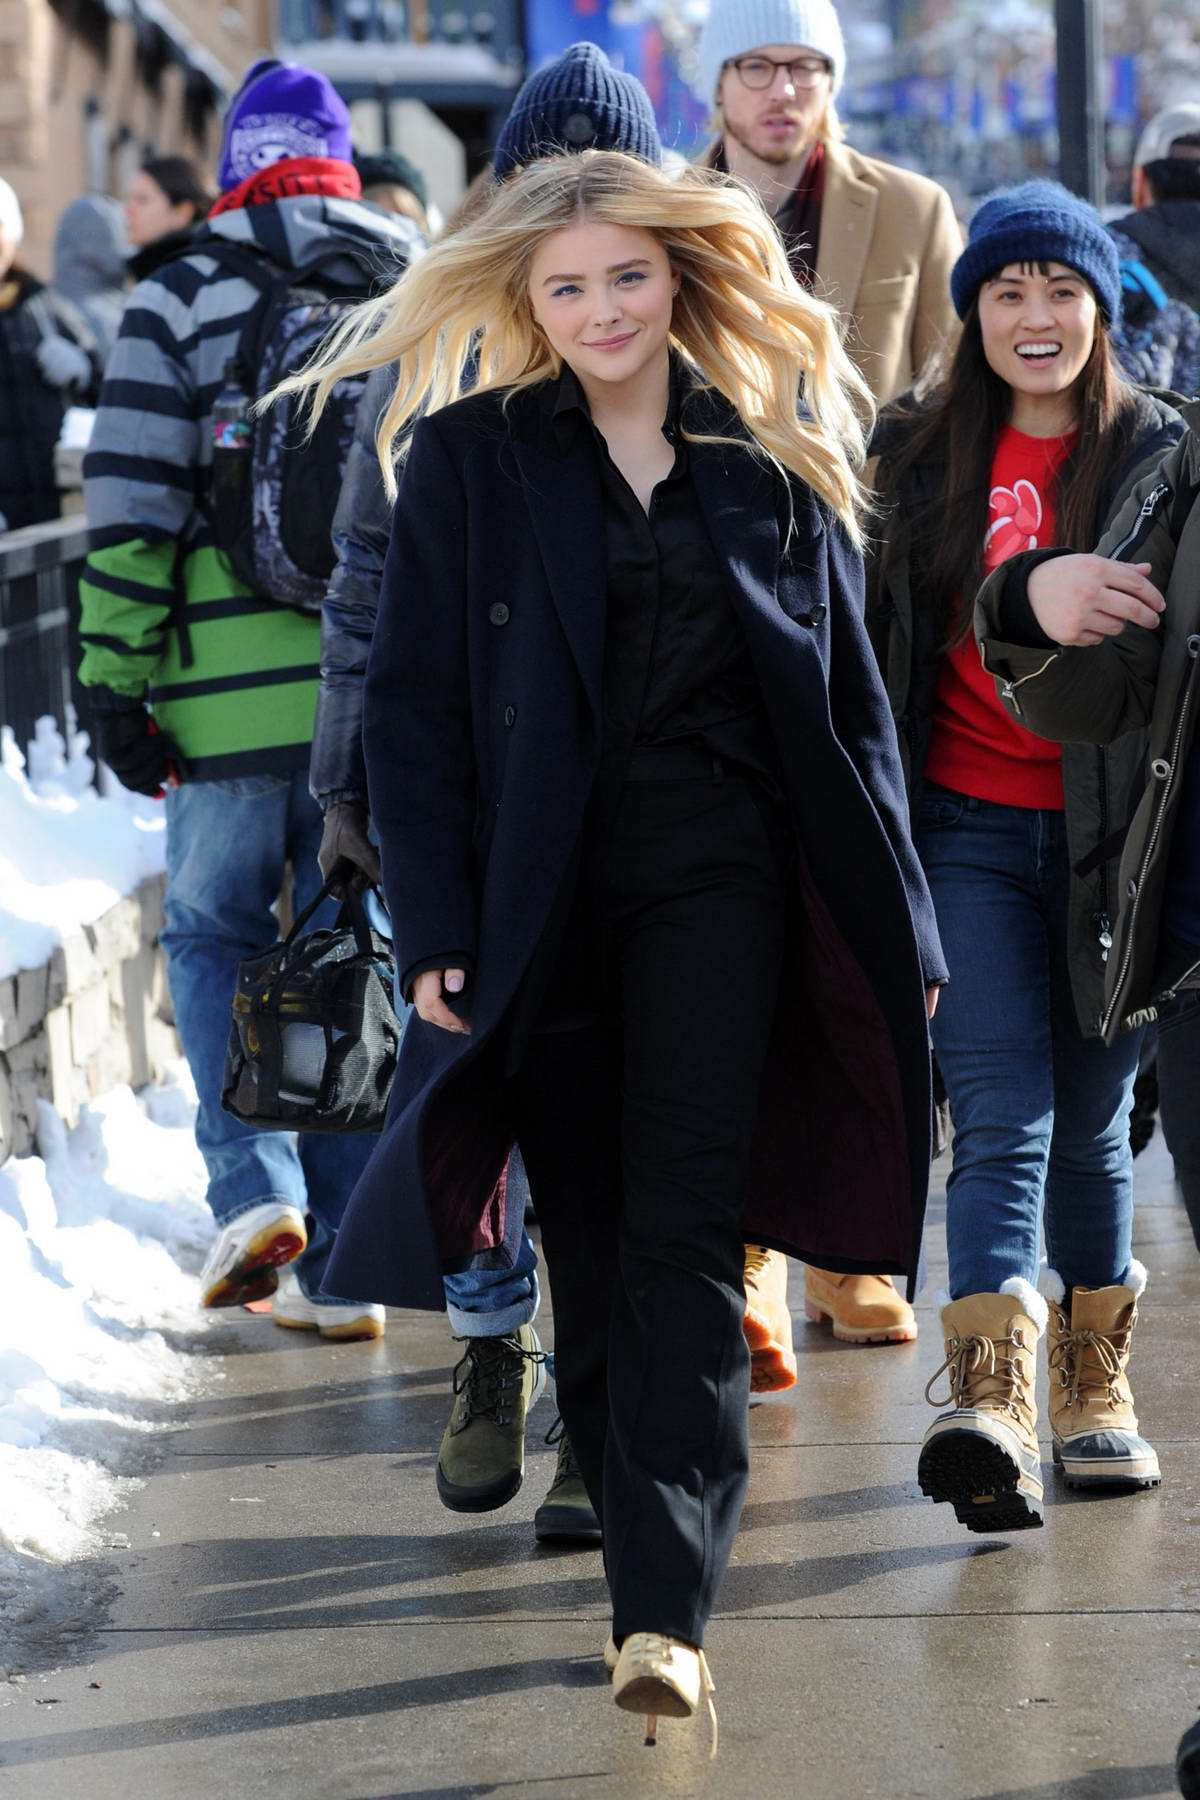 Chloe Grace Moretz promotes her film at the Sundance Film Festival in Park City, Utah